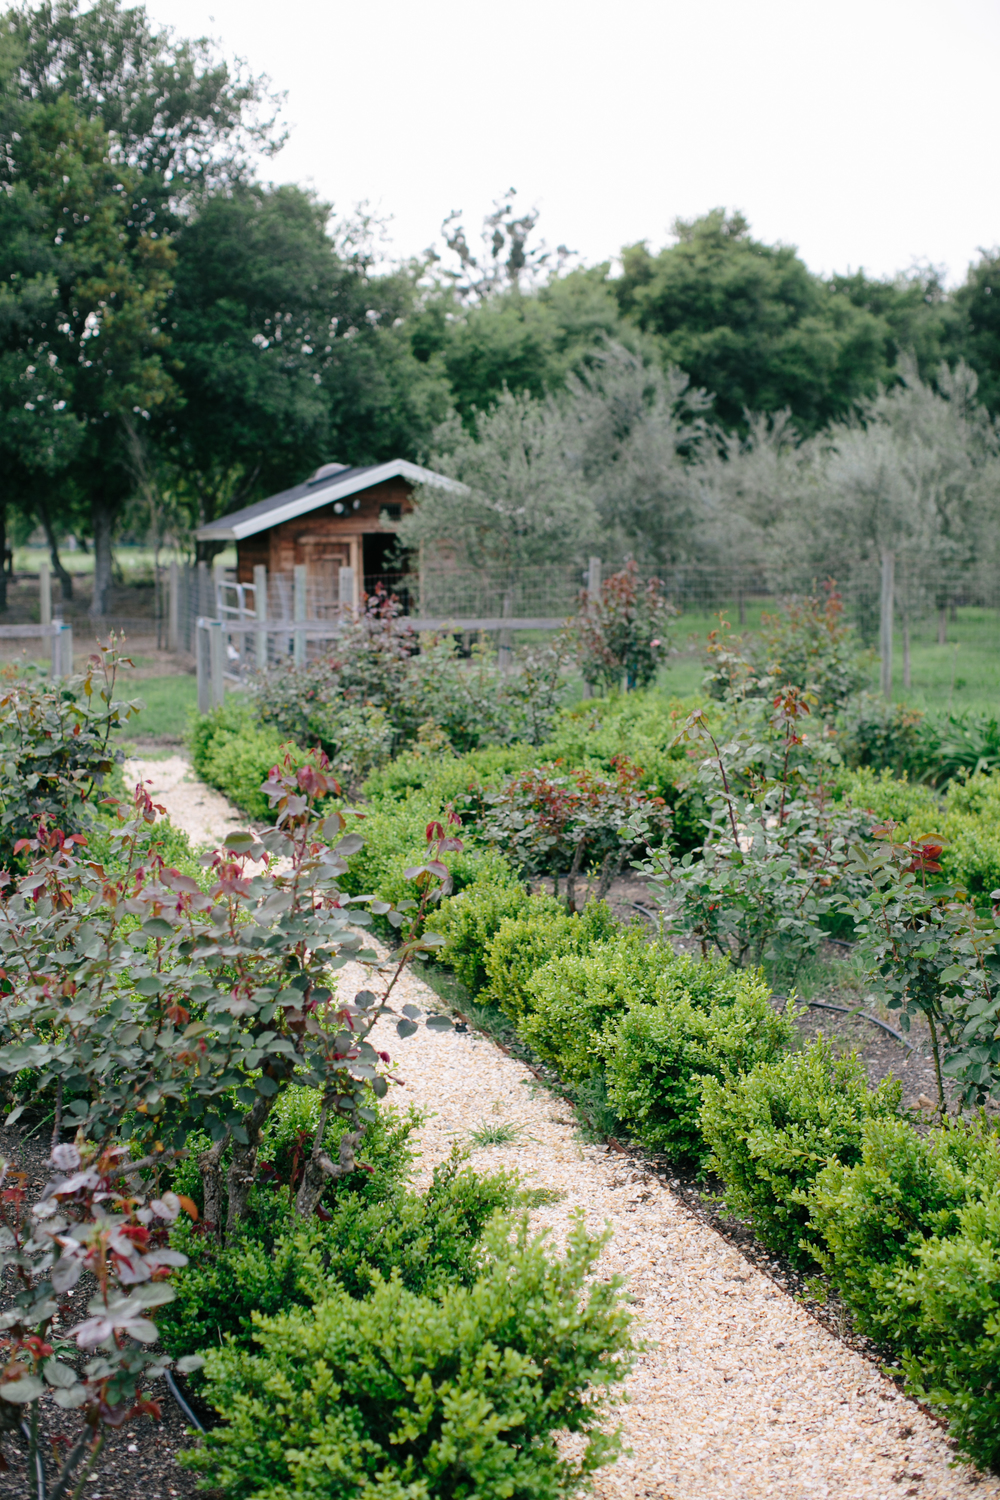 The Rose Gardens of Gore Farms